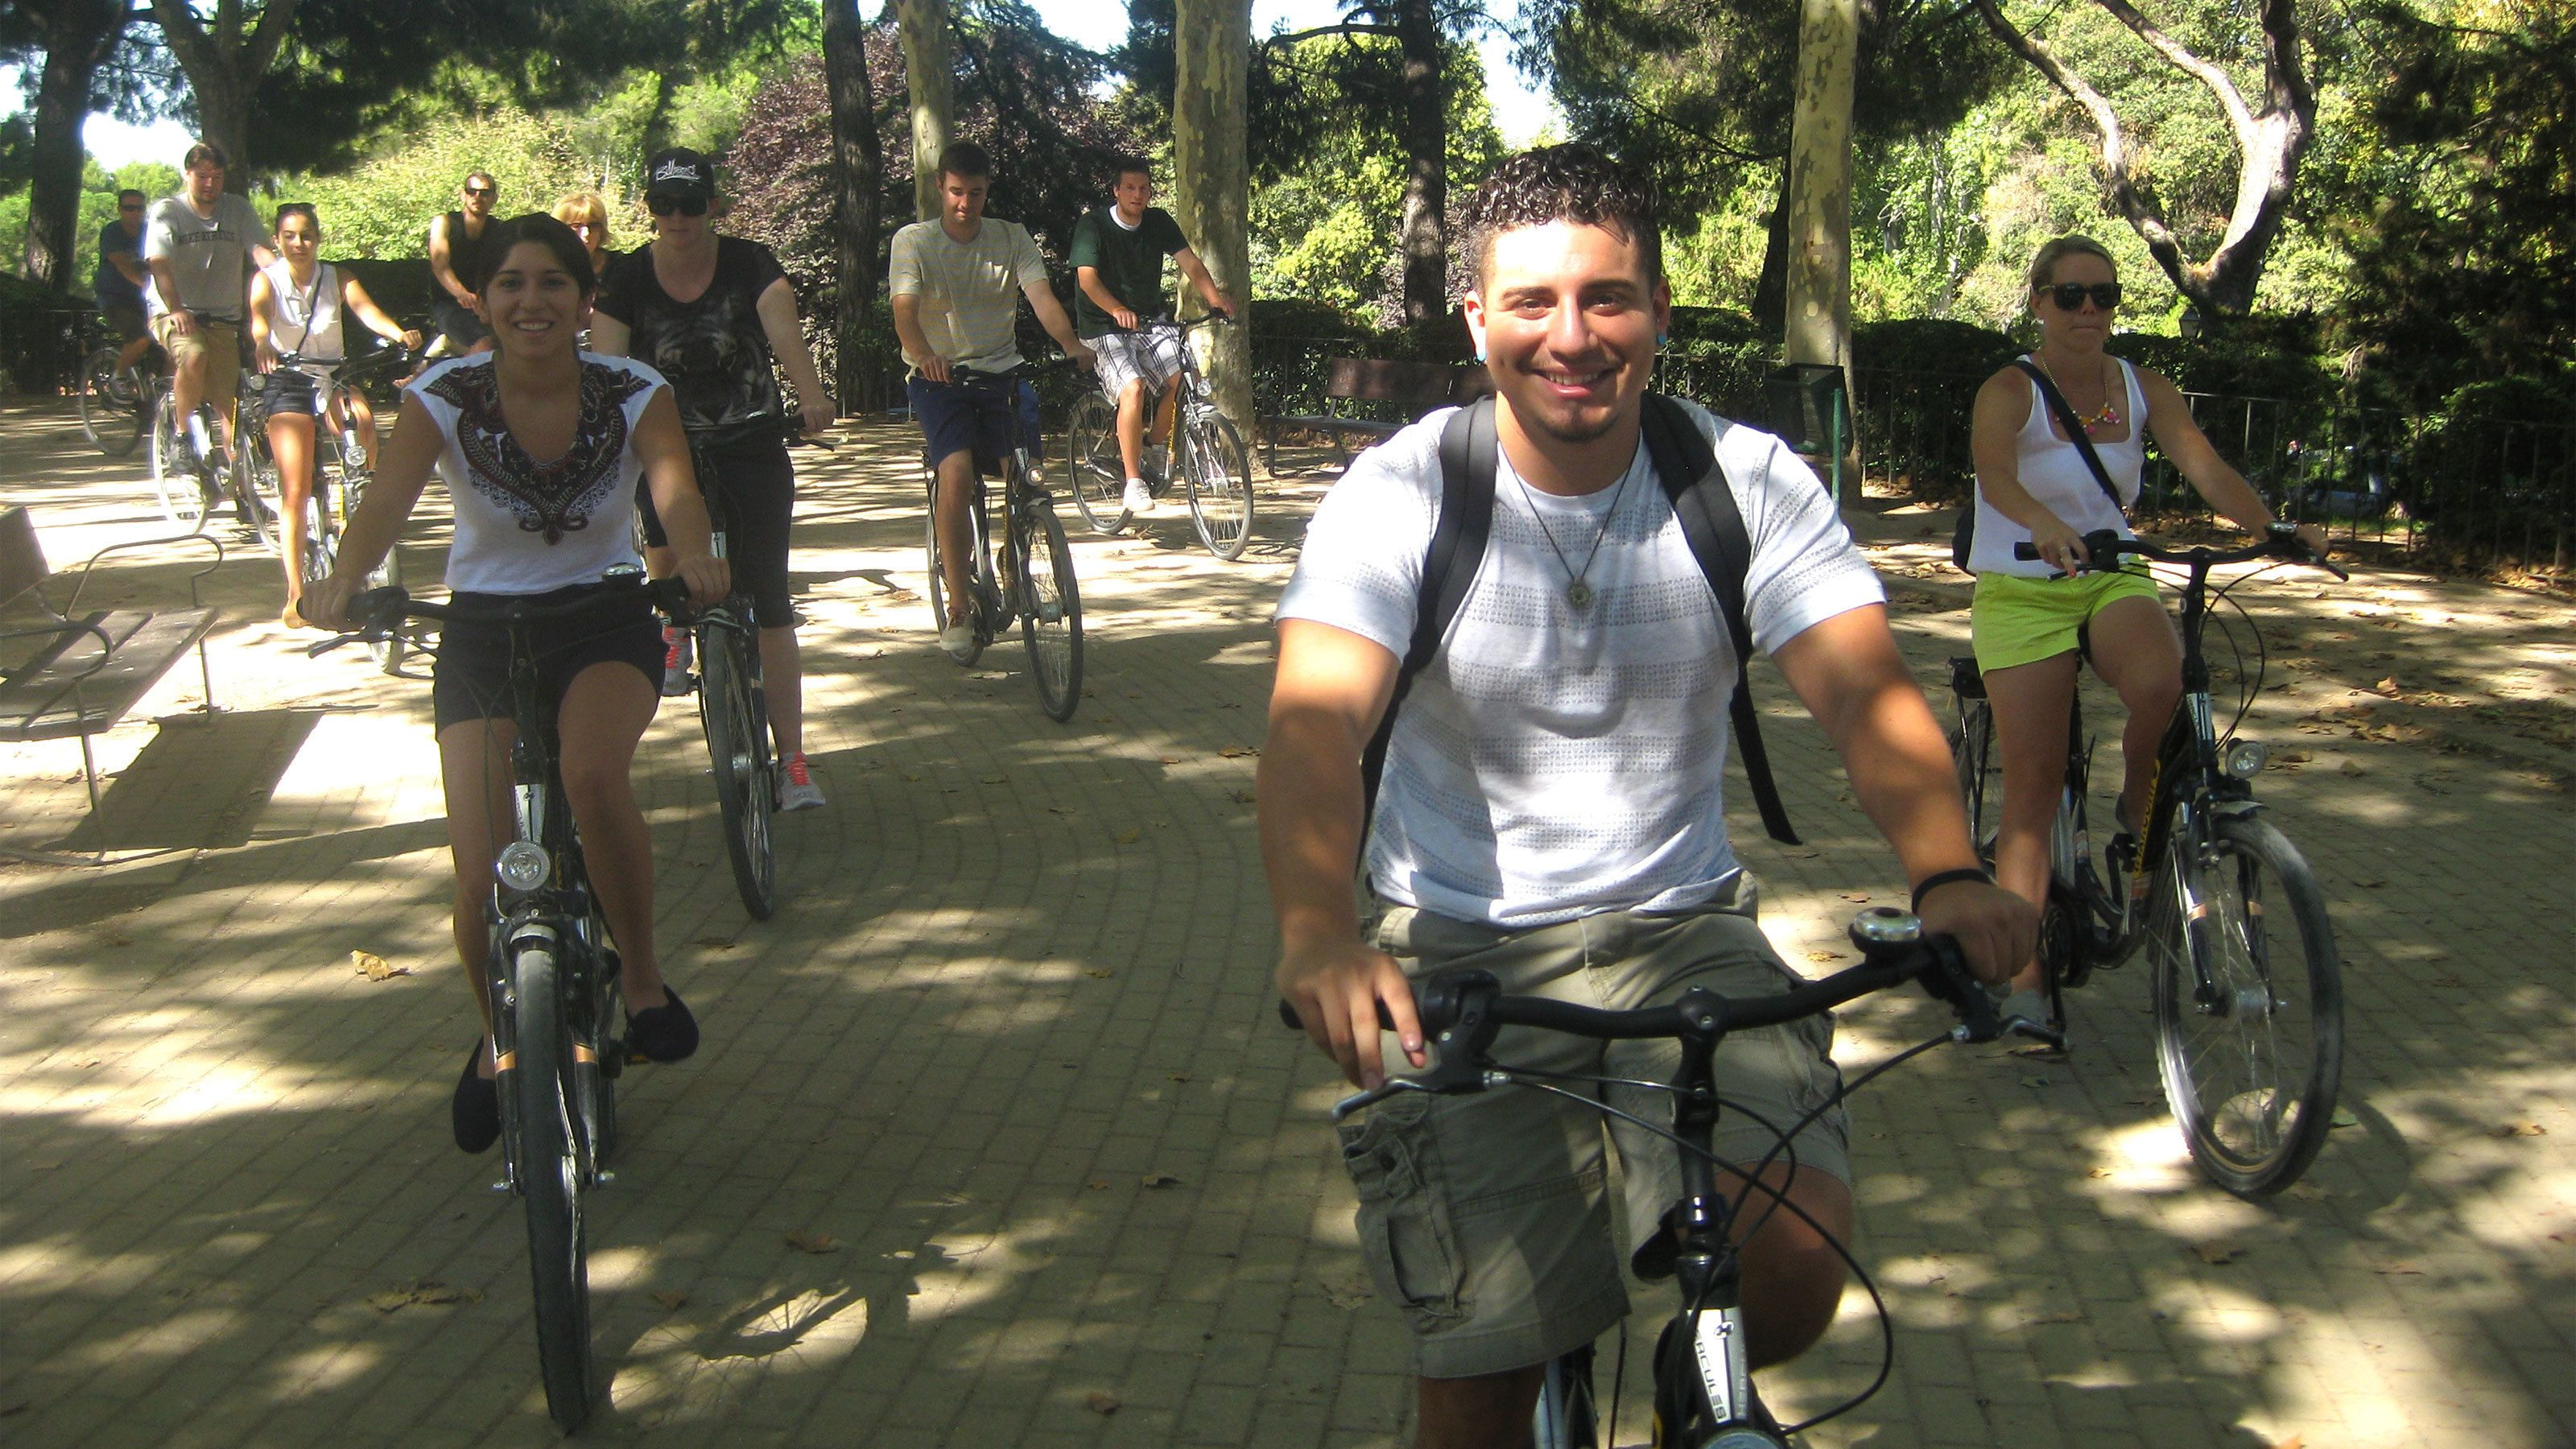 Bicycle tour group riding through park in Madrid